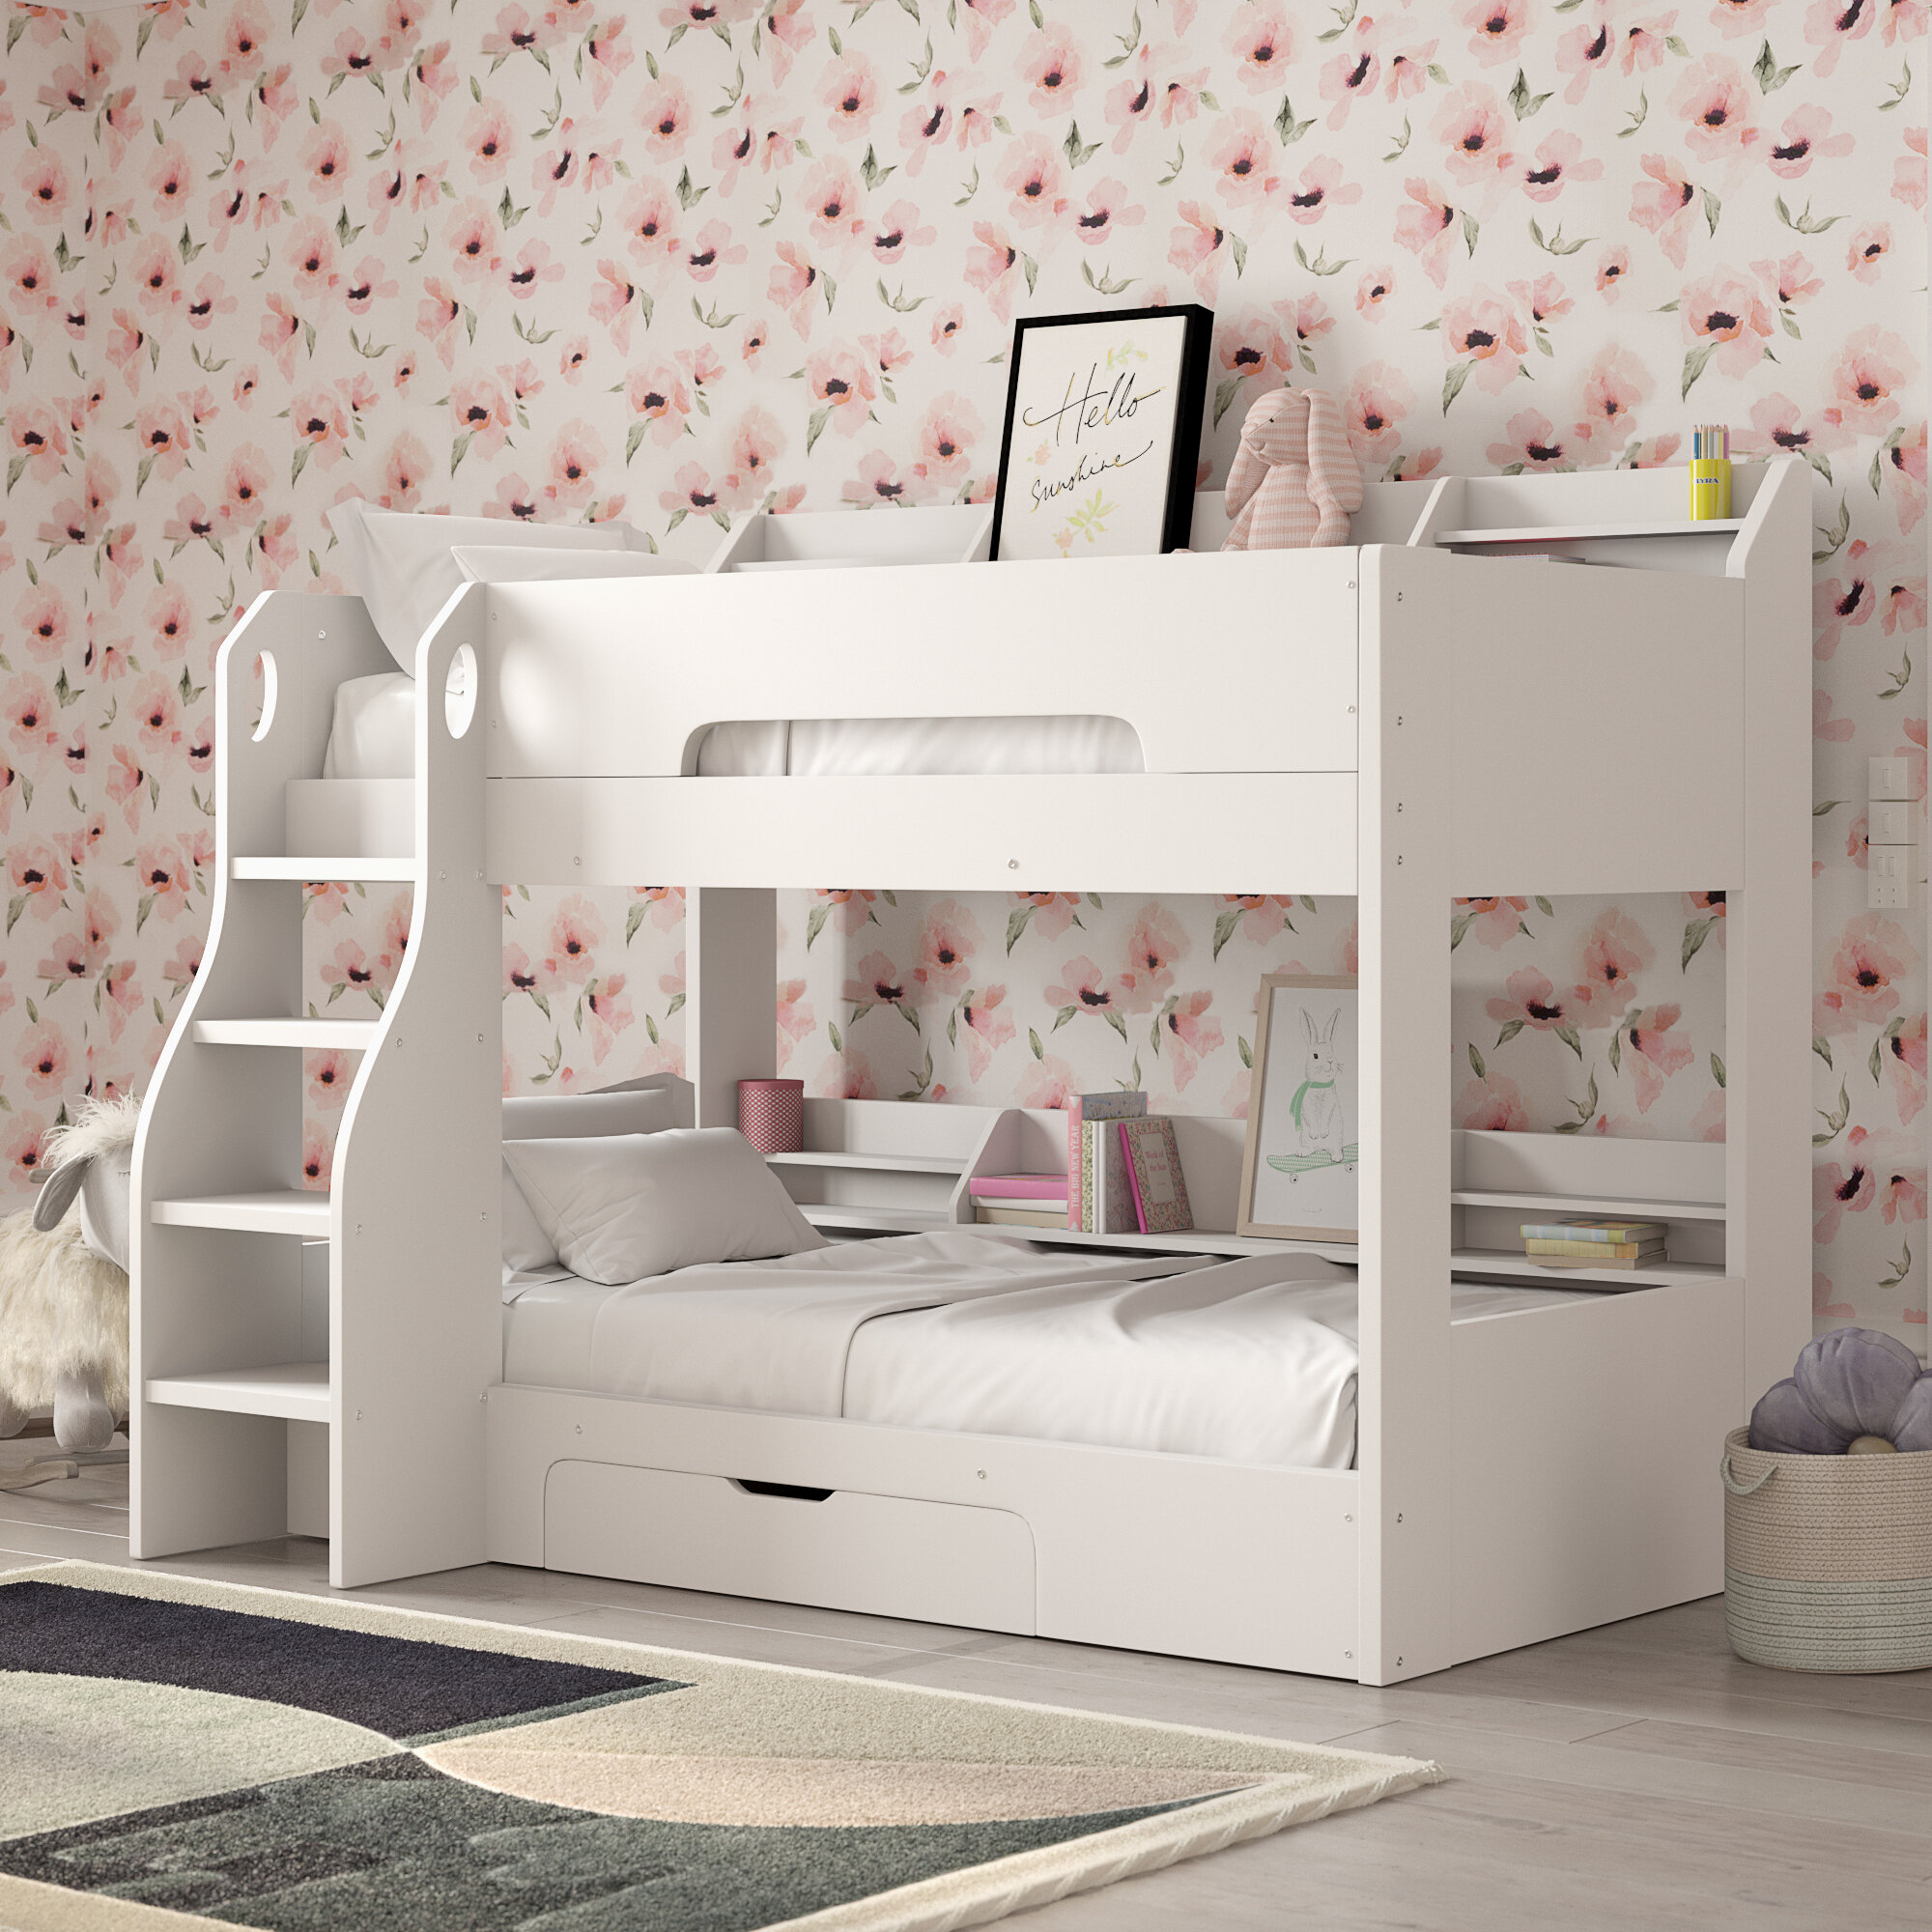 Harriet Bee Rebecca Bunk Bed With Drawer And Shelves Reviews